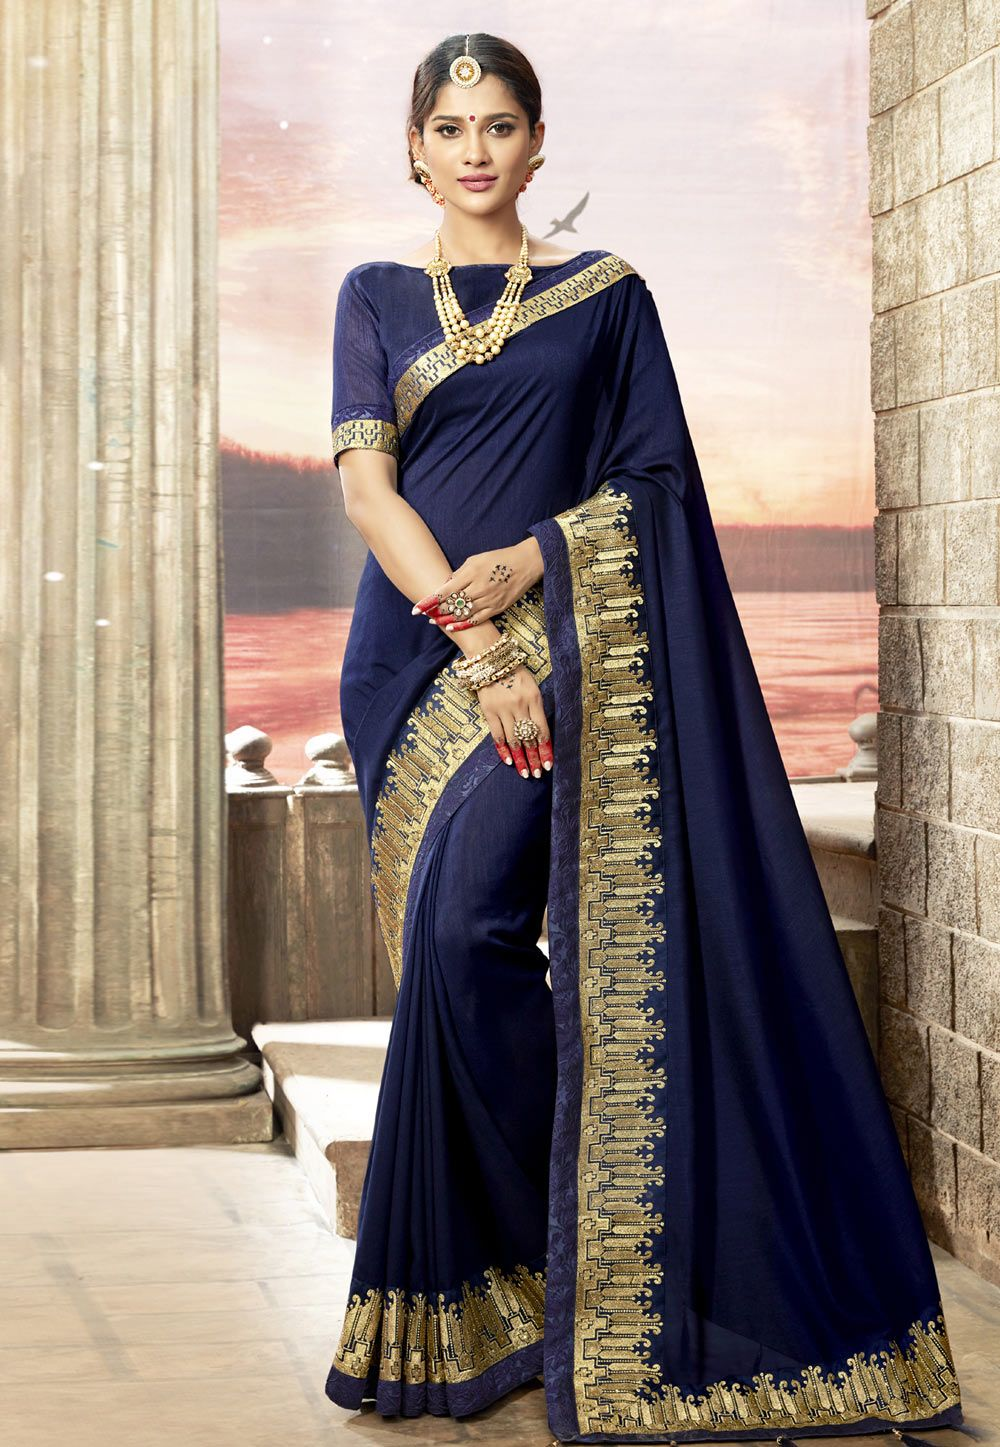 fc2a754388 Buy Navy Blue Silk Embroidered Saree With Blouse 156423 with blouse online  at lowest price from vast collection of sarees at Indianclothstore.com.